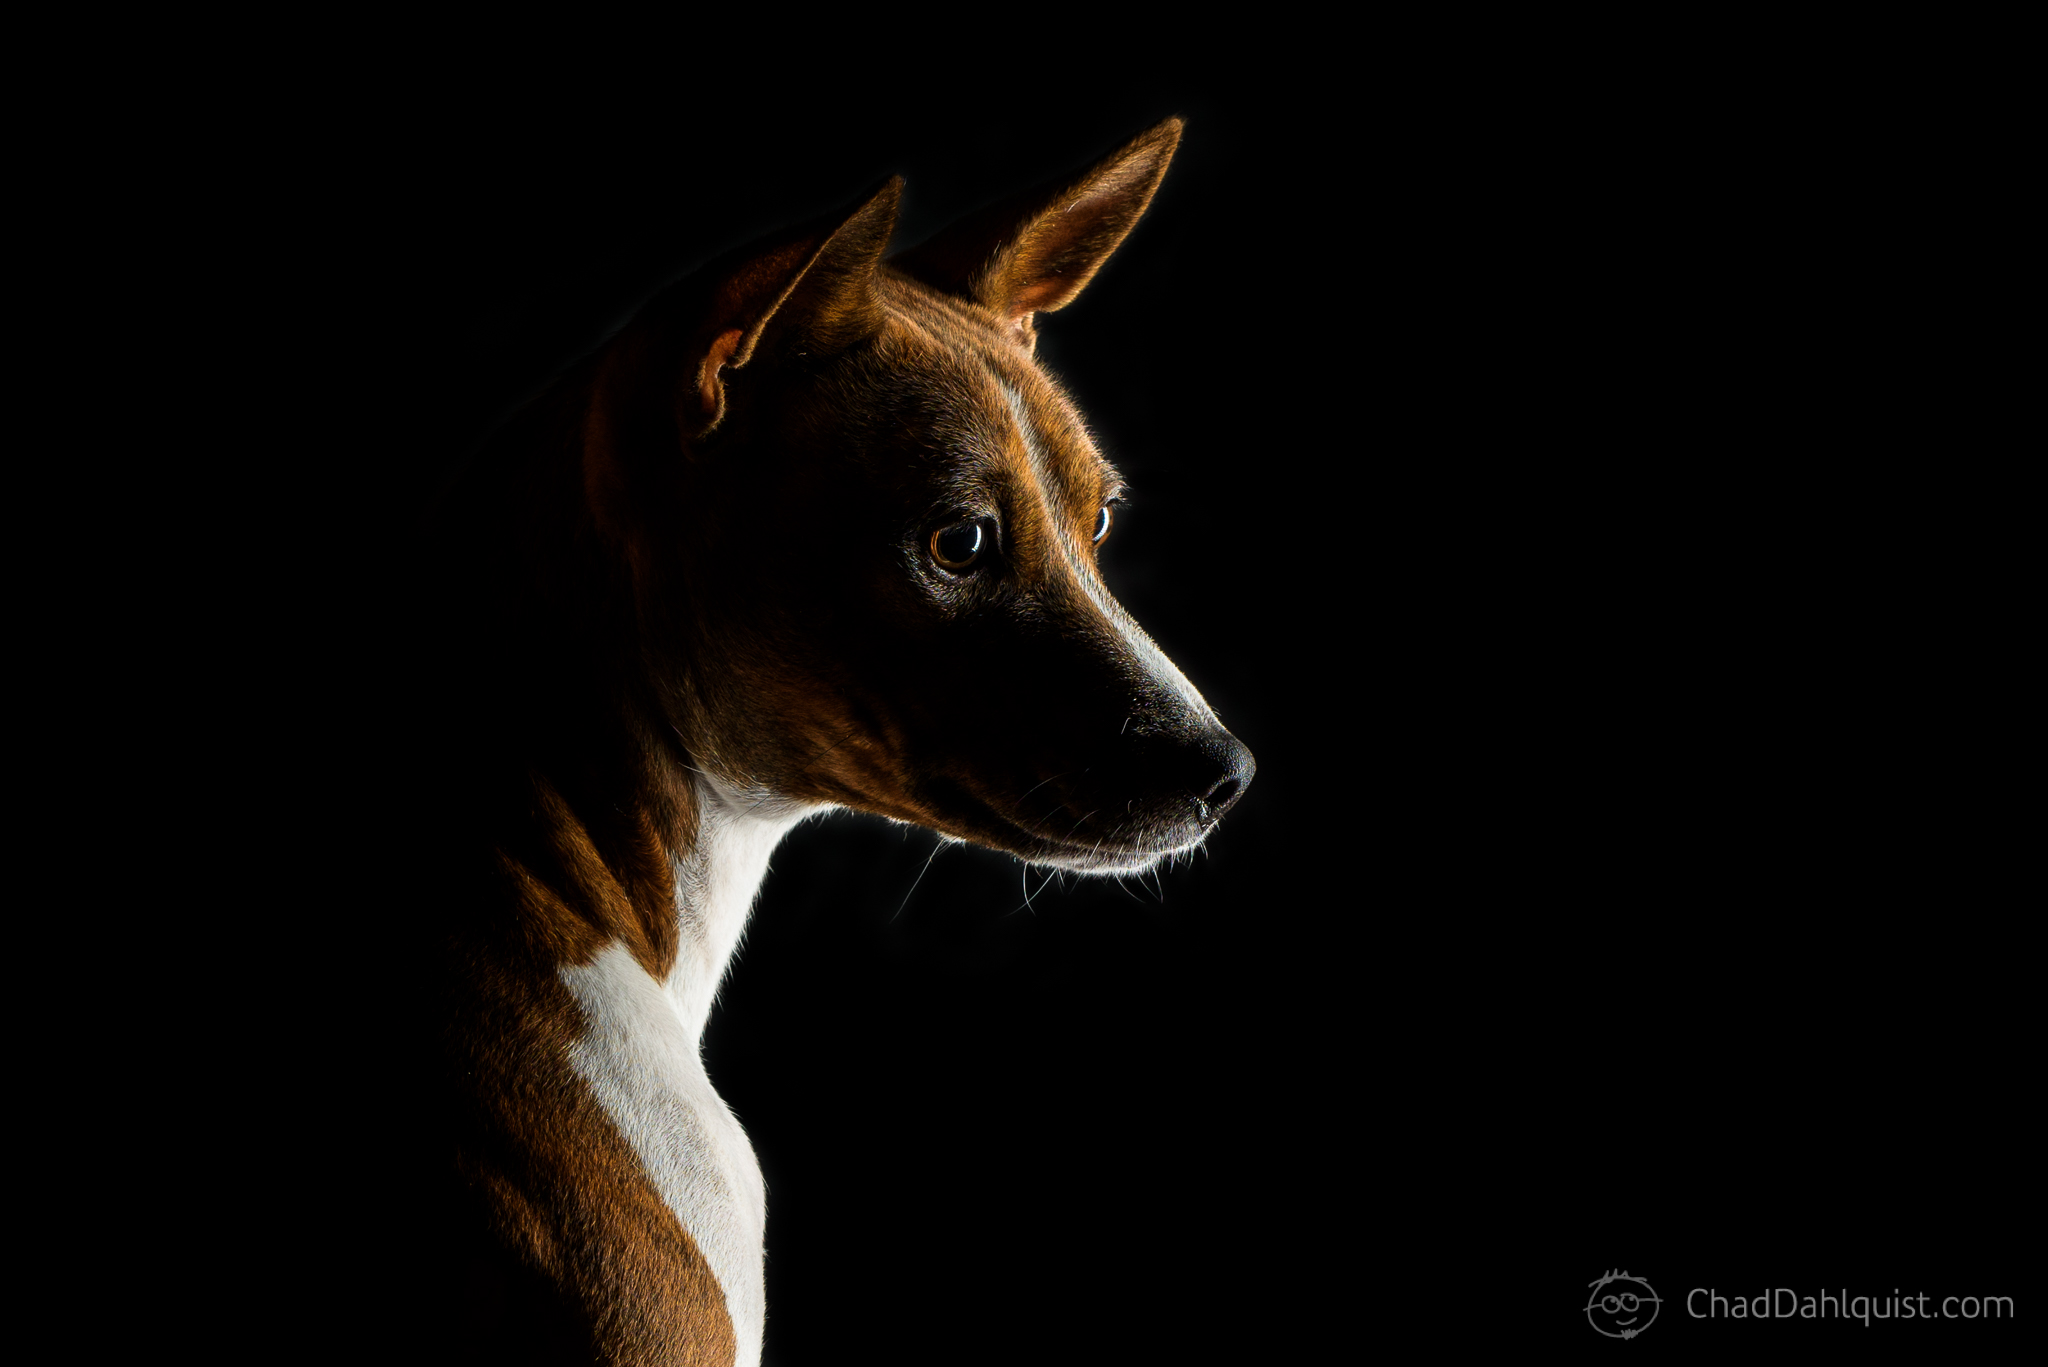 Dog Photography - Chad Dahlquist Photography